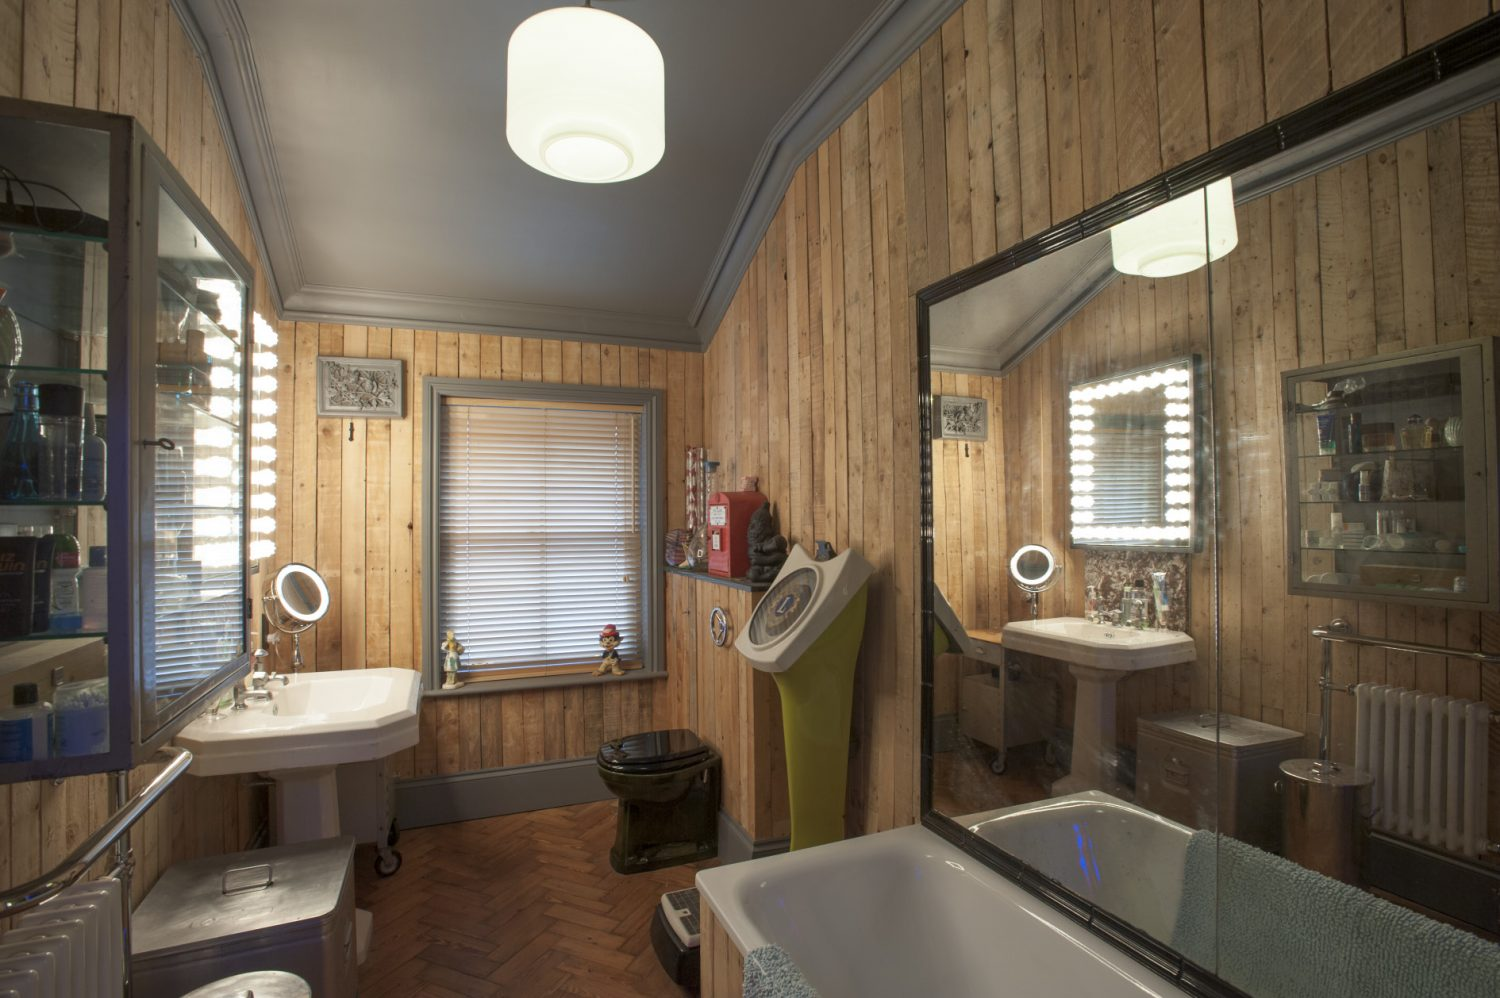 The timber-clad bathroom is home to an old full length, glass-fronted-and-sided surgical cabinet and French basin – another Old Town find. Old penny-in-the-slot scales stand beside the loo, the flush handle for which is a chrome wheel valve-opener from a fire engine